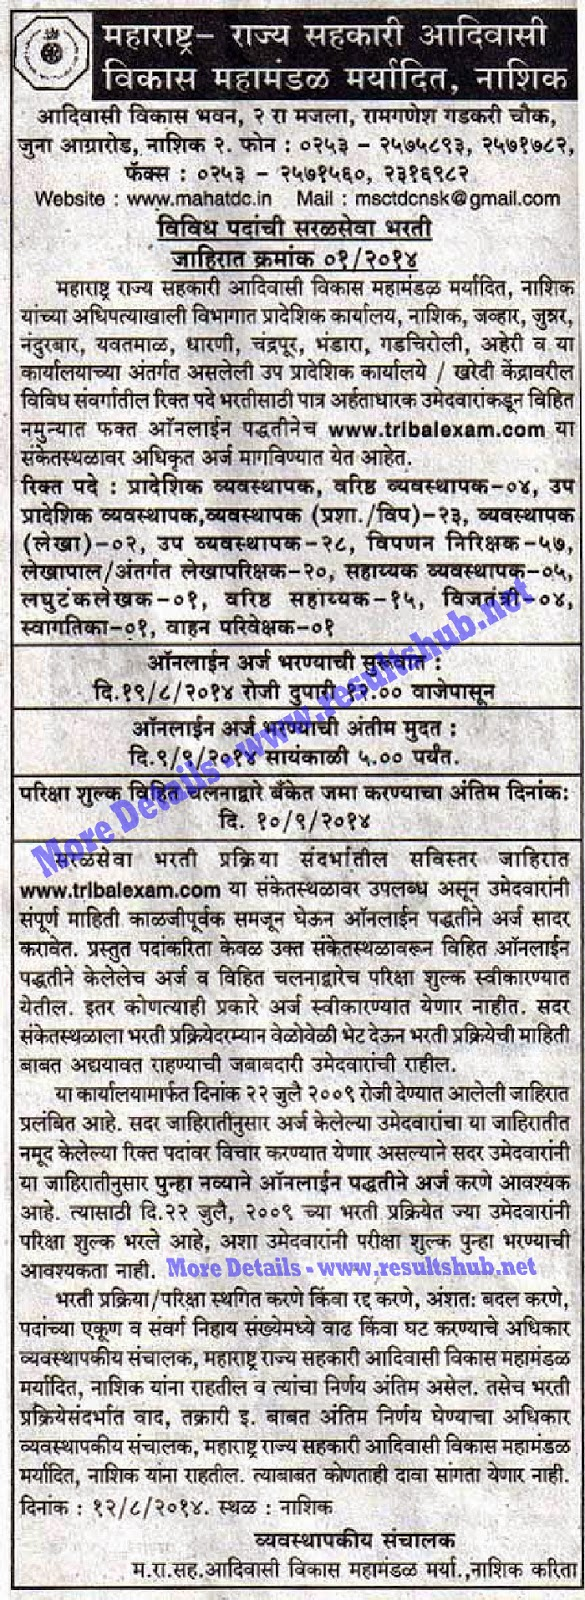 Adivasi Vikas Maha Mandal Recruitment 2014